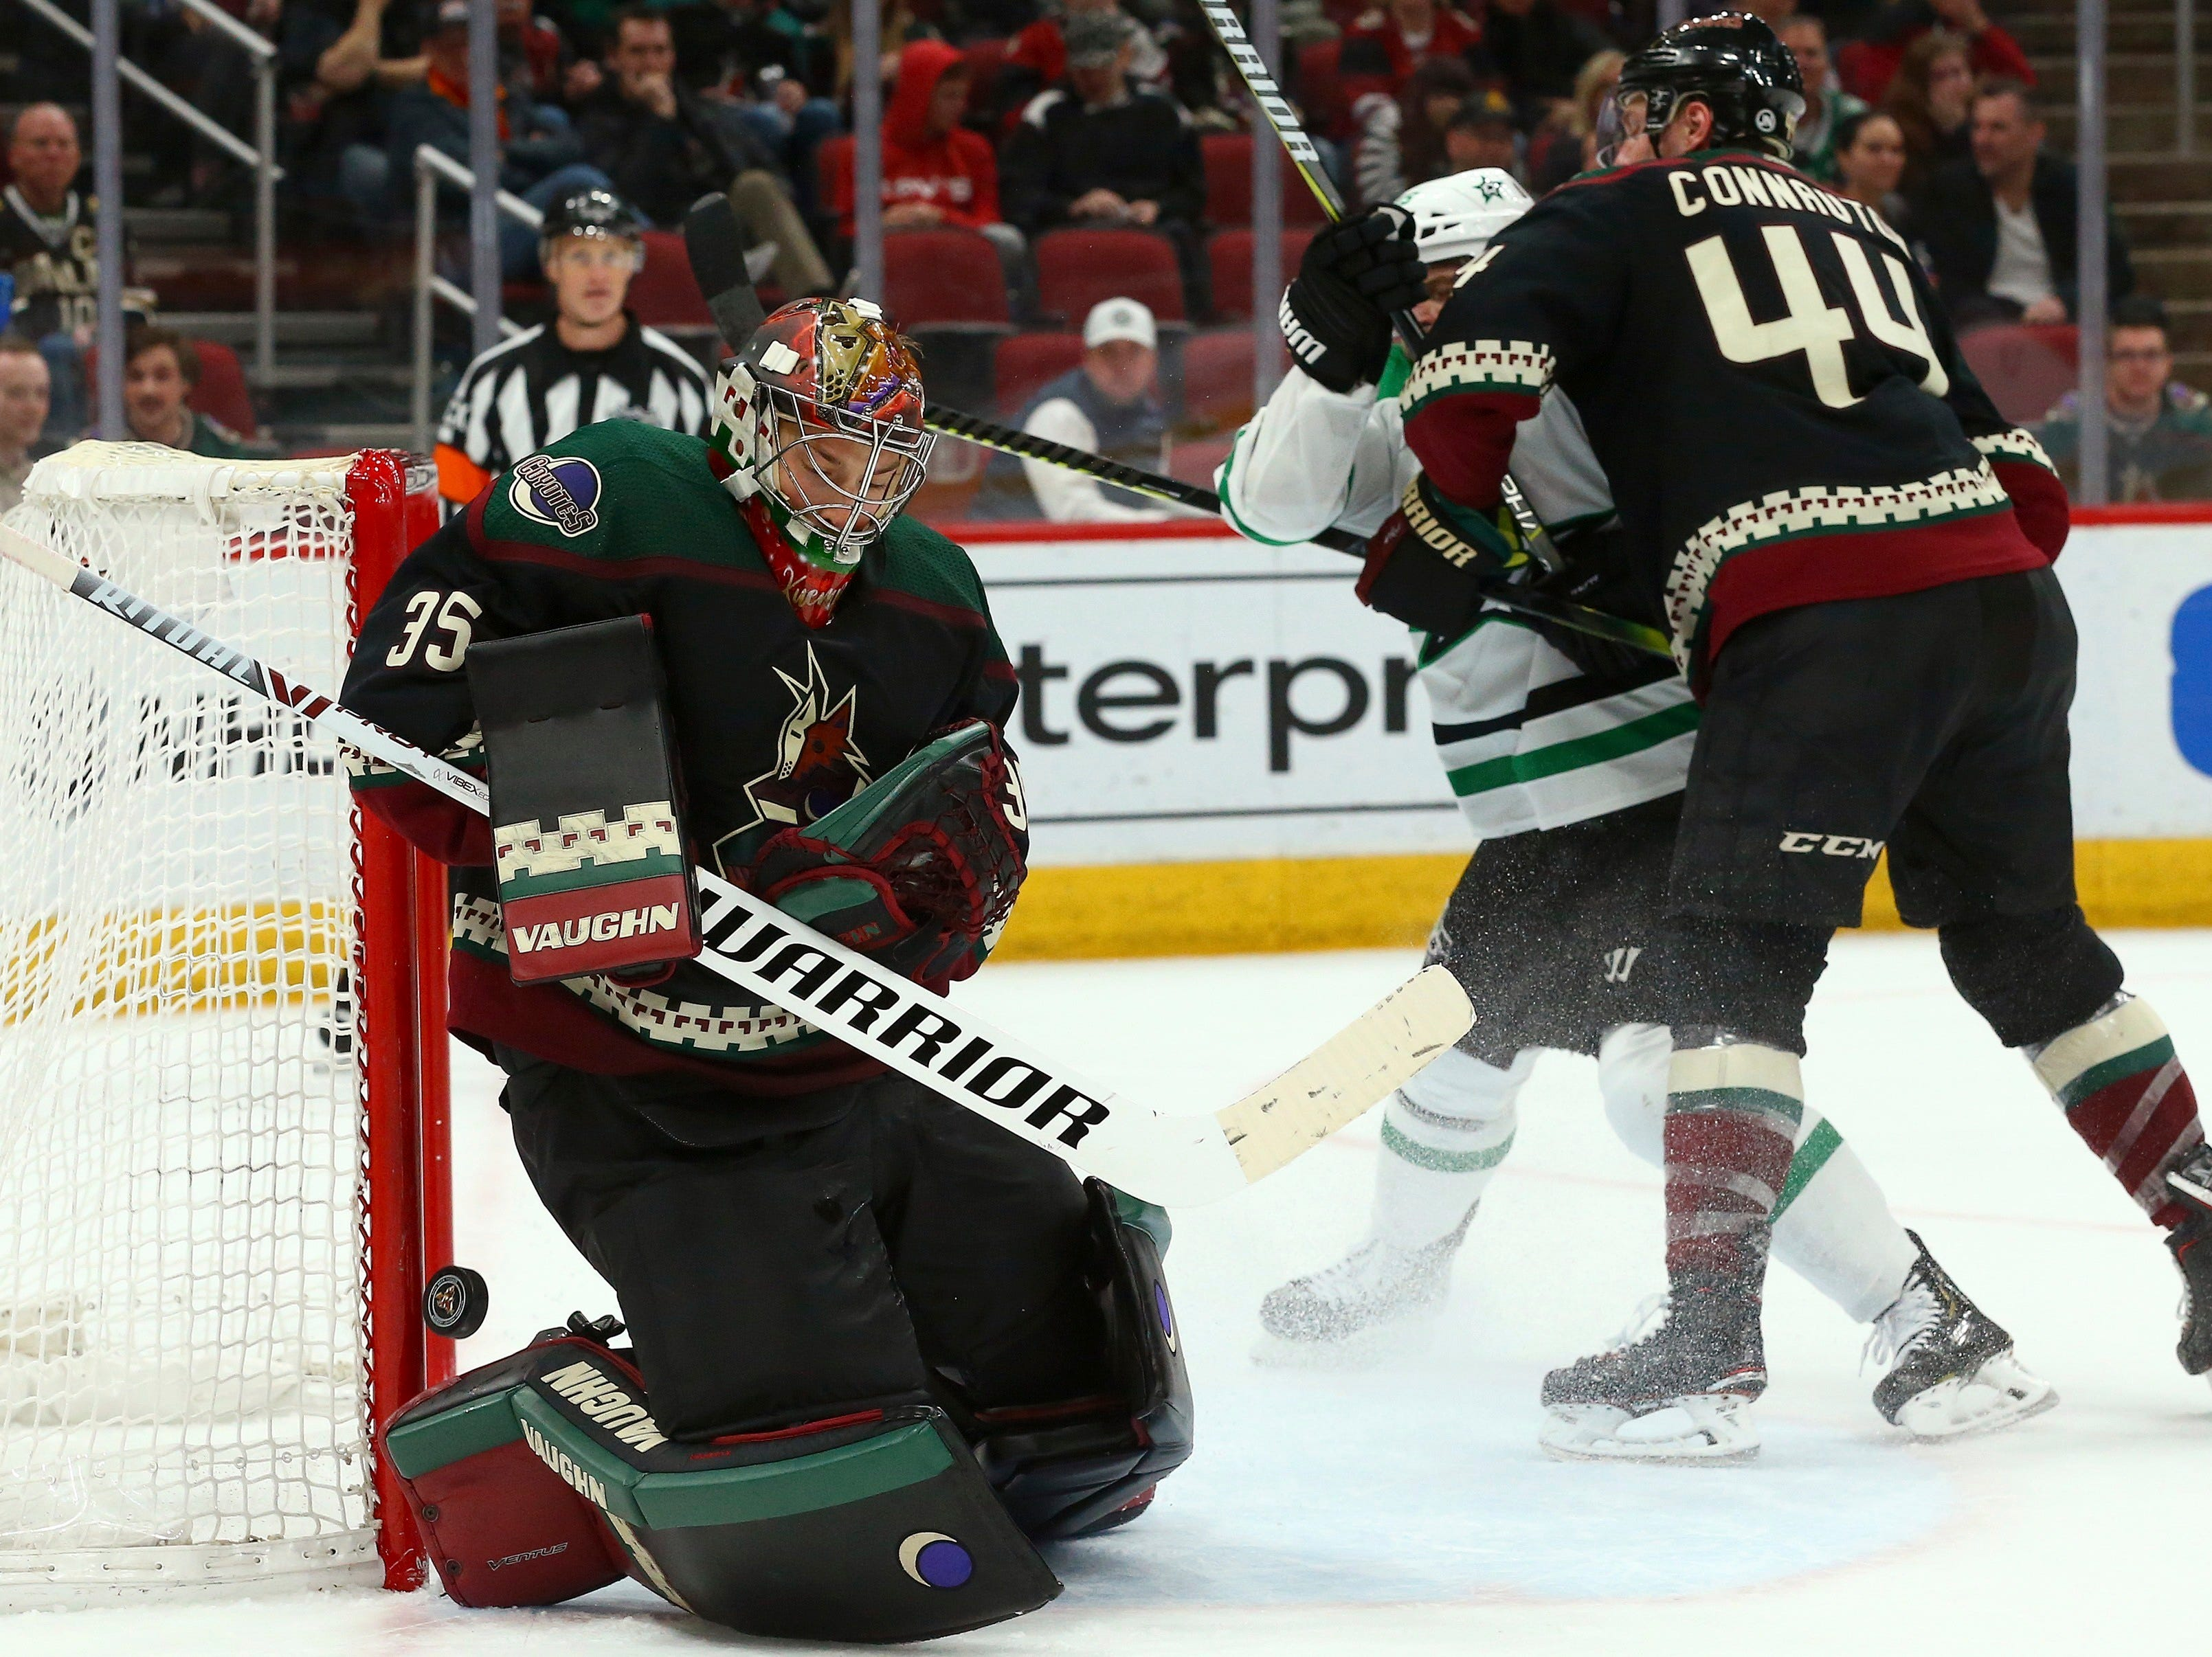 Arizona Coyotes goaltender Darcy Kuemper (35) makes a save as Coyotes defenseman Kevin Connauton (44) shoves Dallas Stars left wing Blake Comeau, second from right, during the third period of an NHL hockey game Saturday, Feb. 9, 2019, in Glendale, Ariz. (AP Photo/Ross D. Franklin)